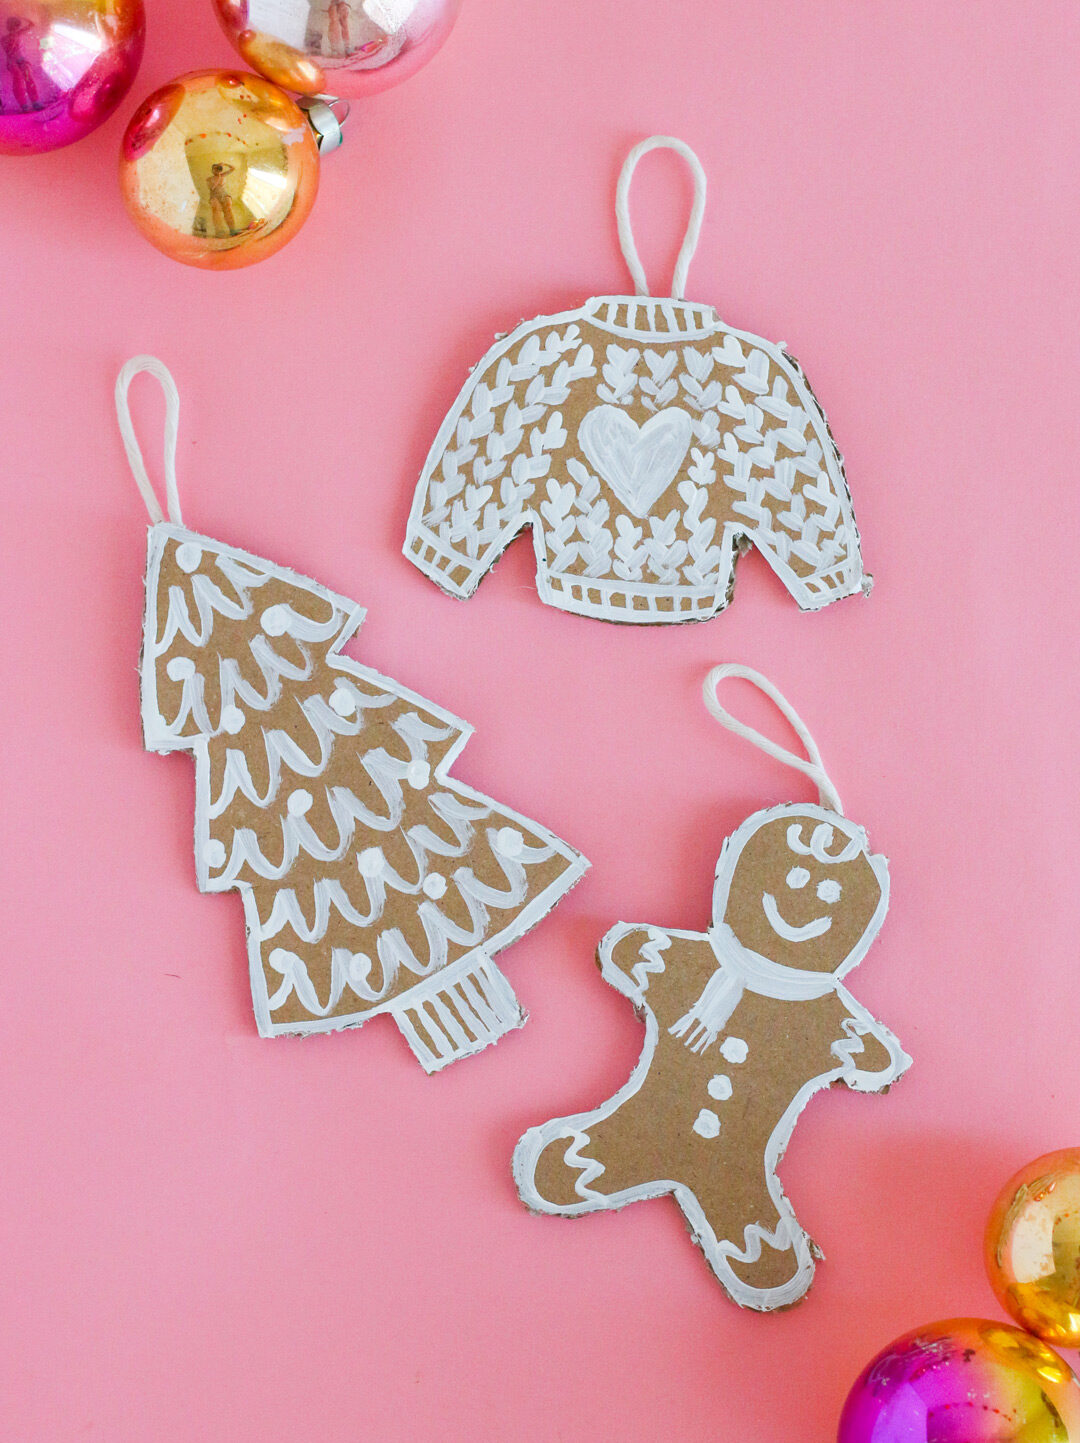 DIY Holiday Decorations: Cardboard Gingerbread Cookie Ornaments